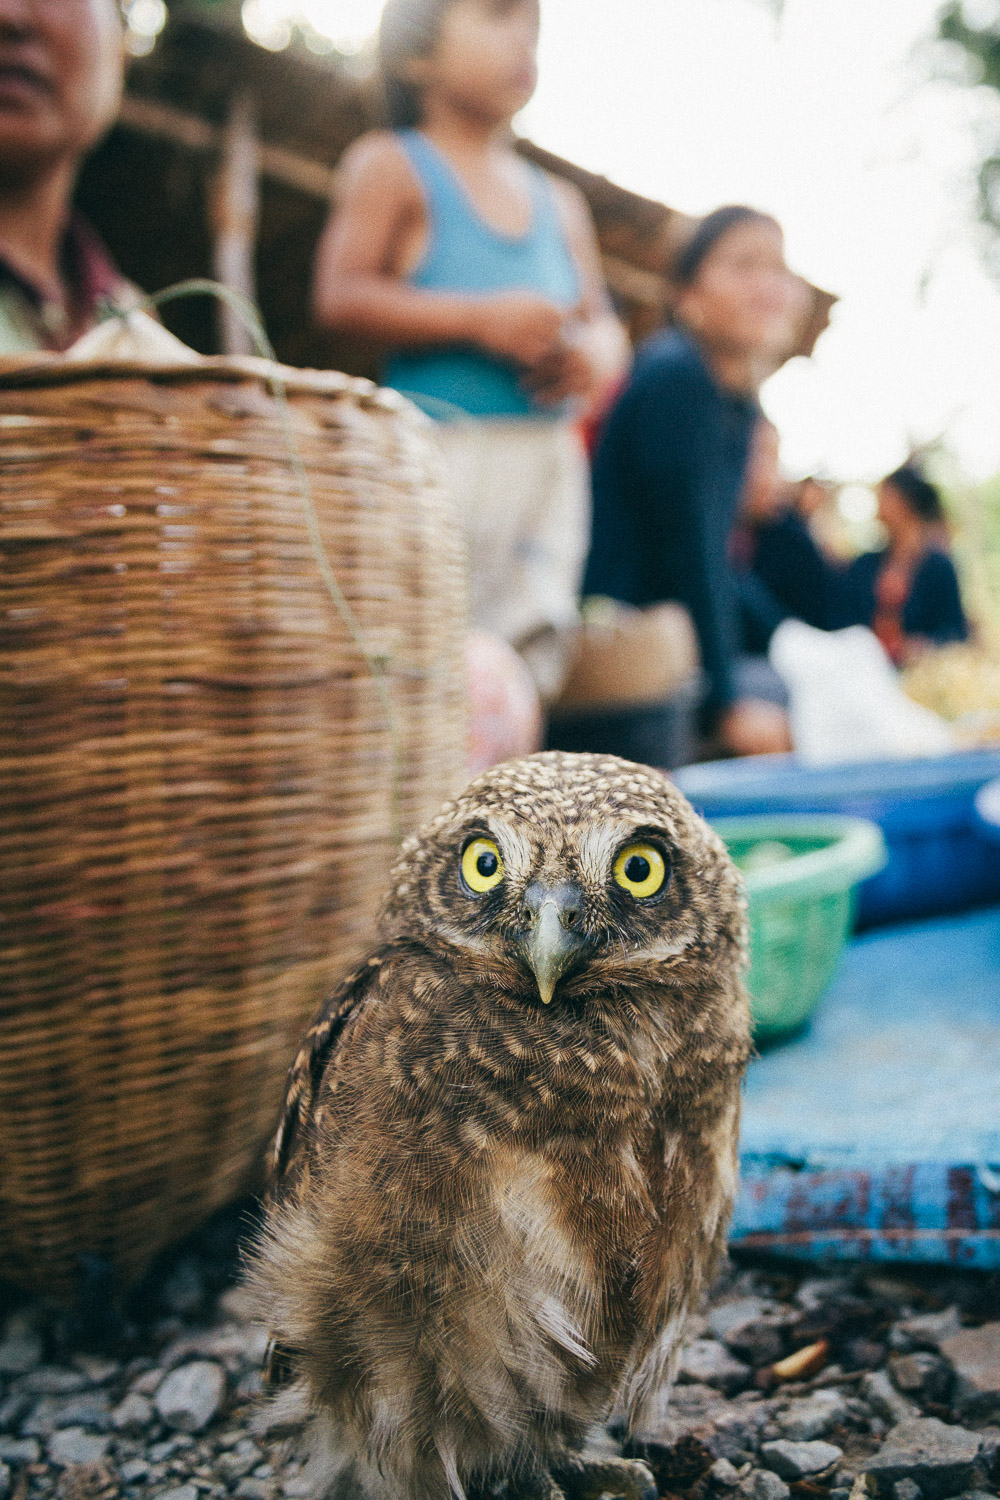 An owl for sale at a roadside market in Savannakhet Province, Laos